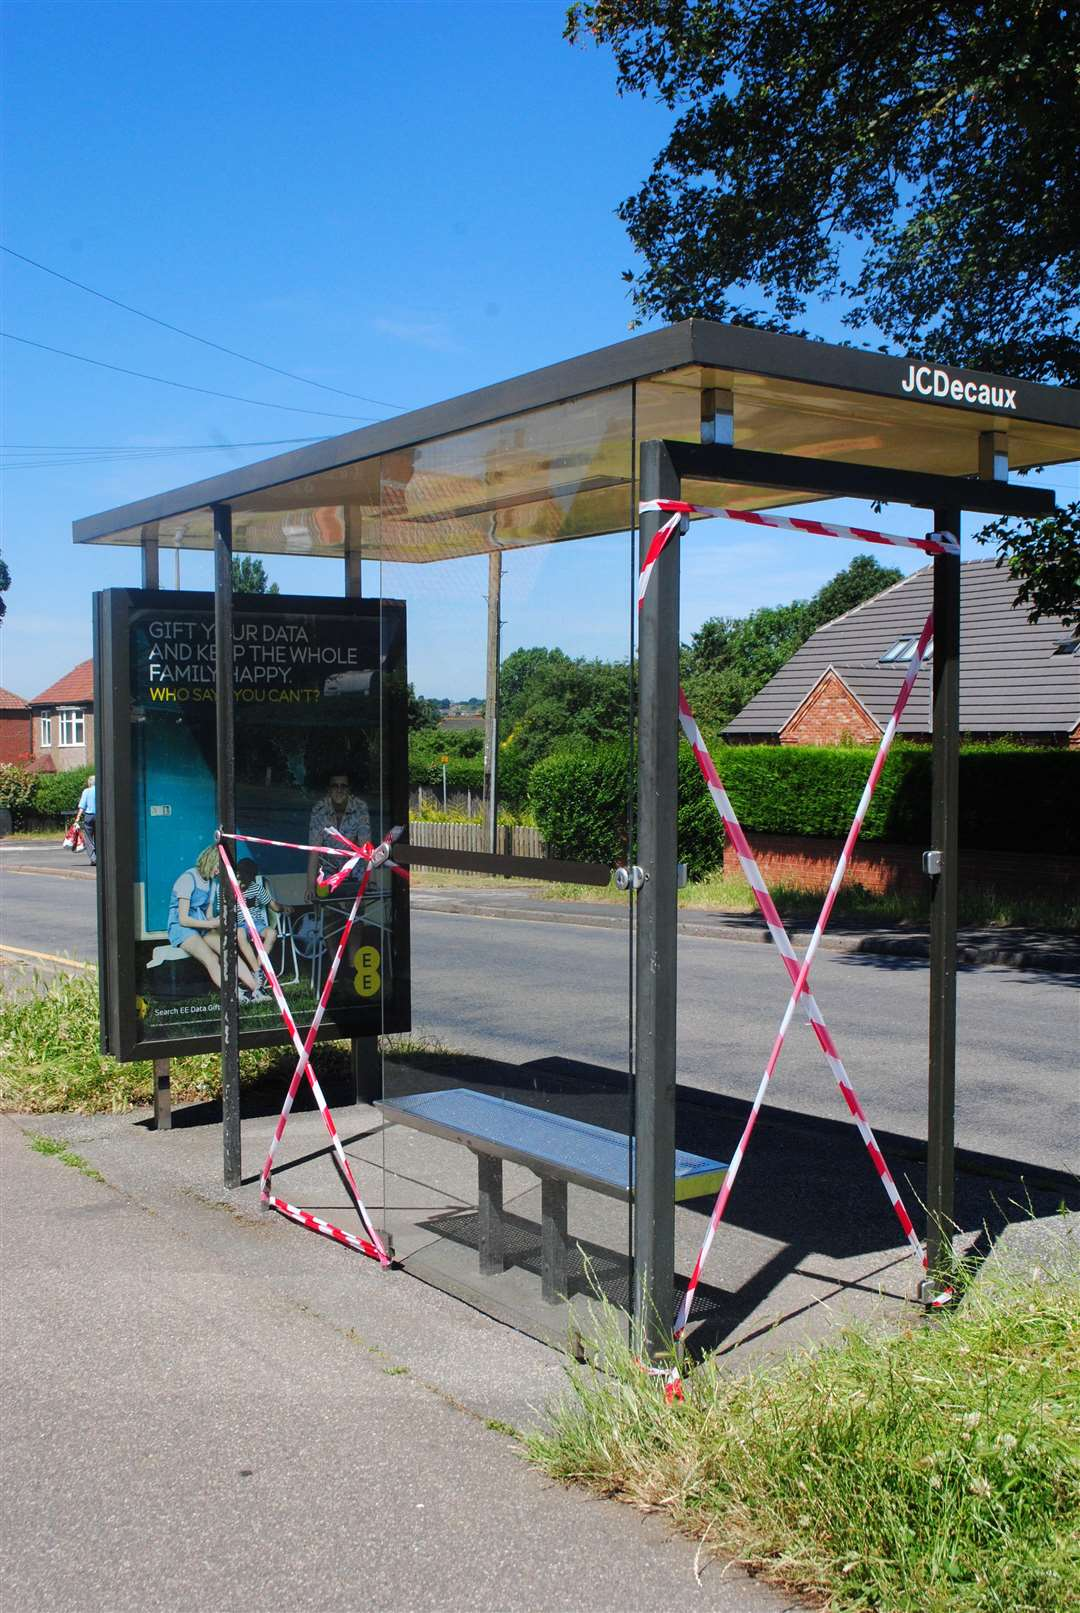 The bus stop on Turnor Close (2723519)